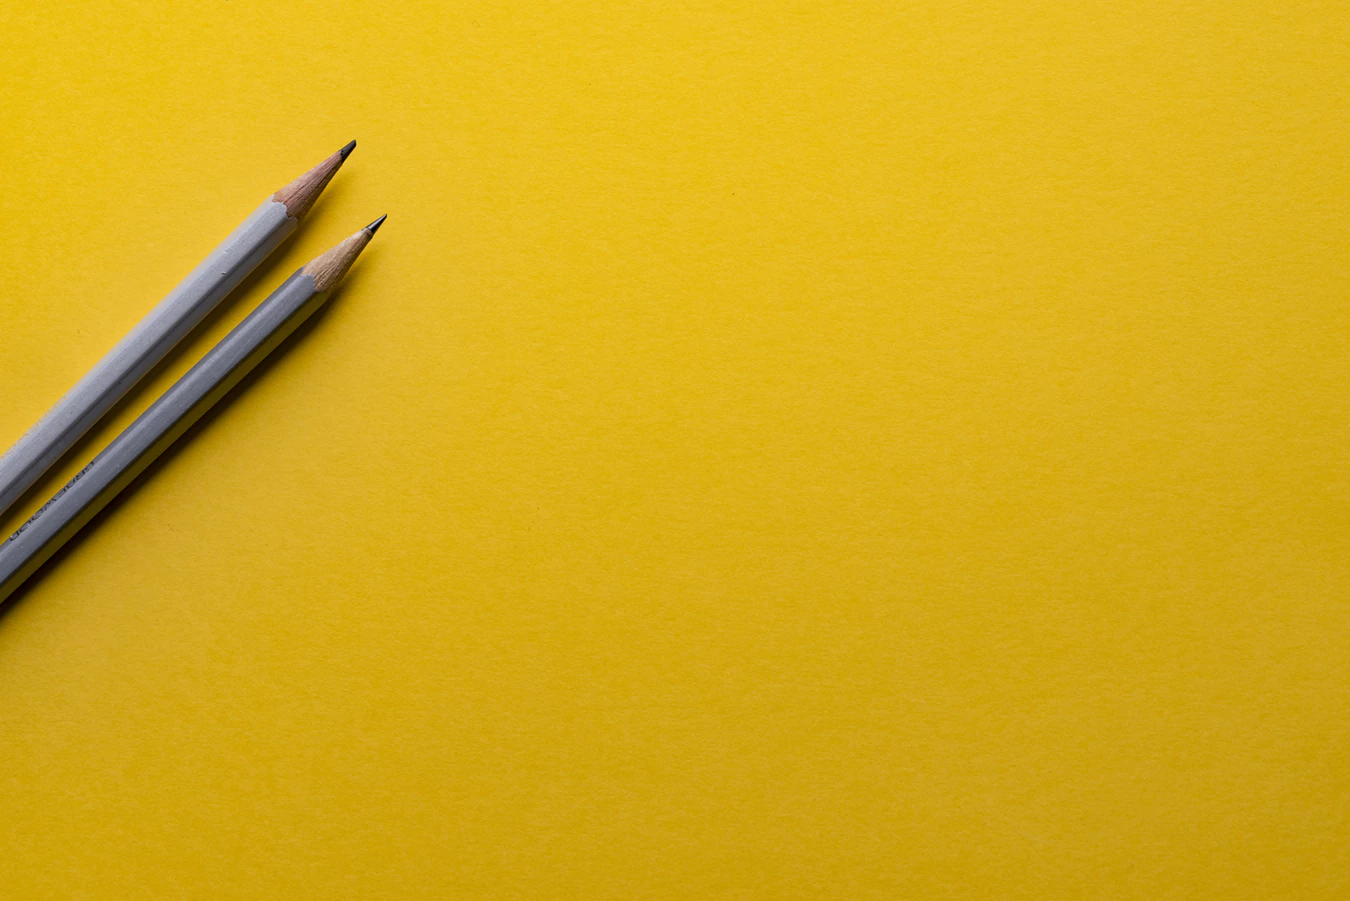 Basic Requirements to be a Technical Writer